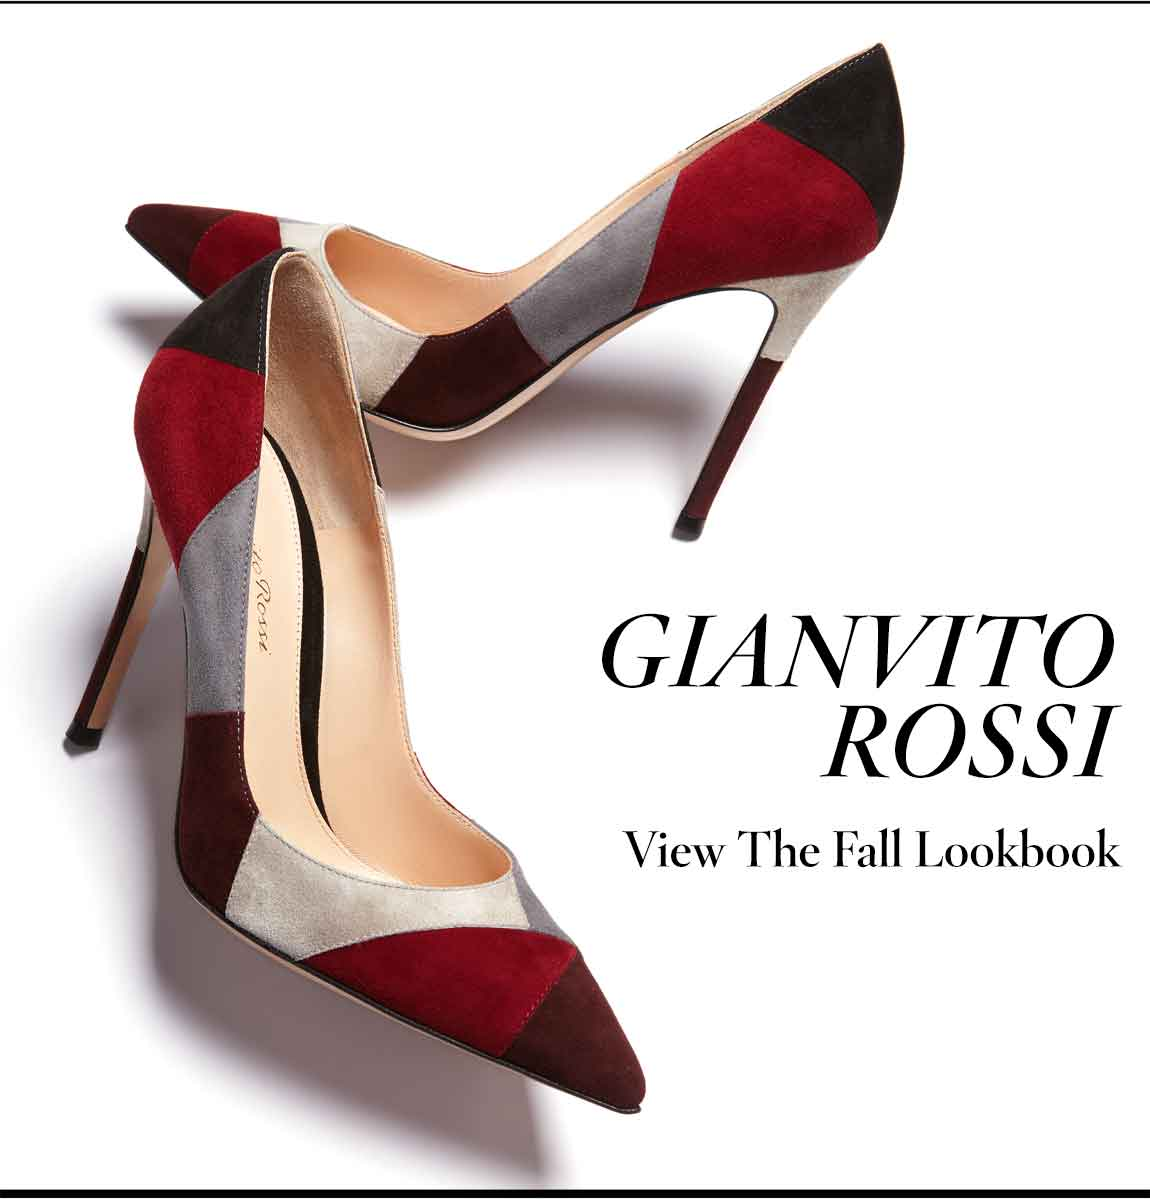 Gianvito Rossi Lookbook